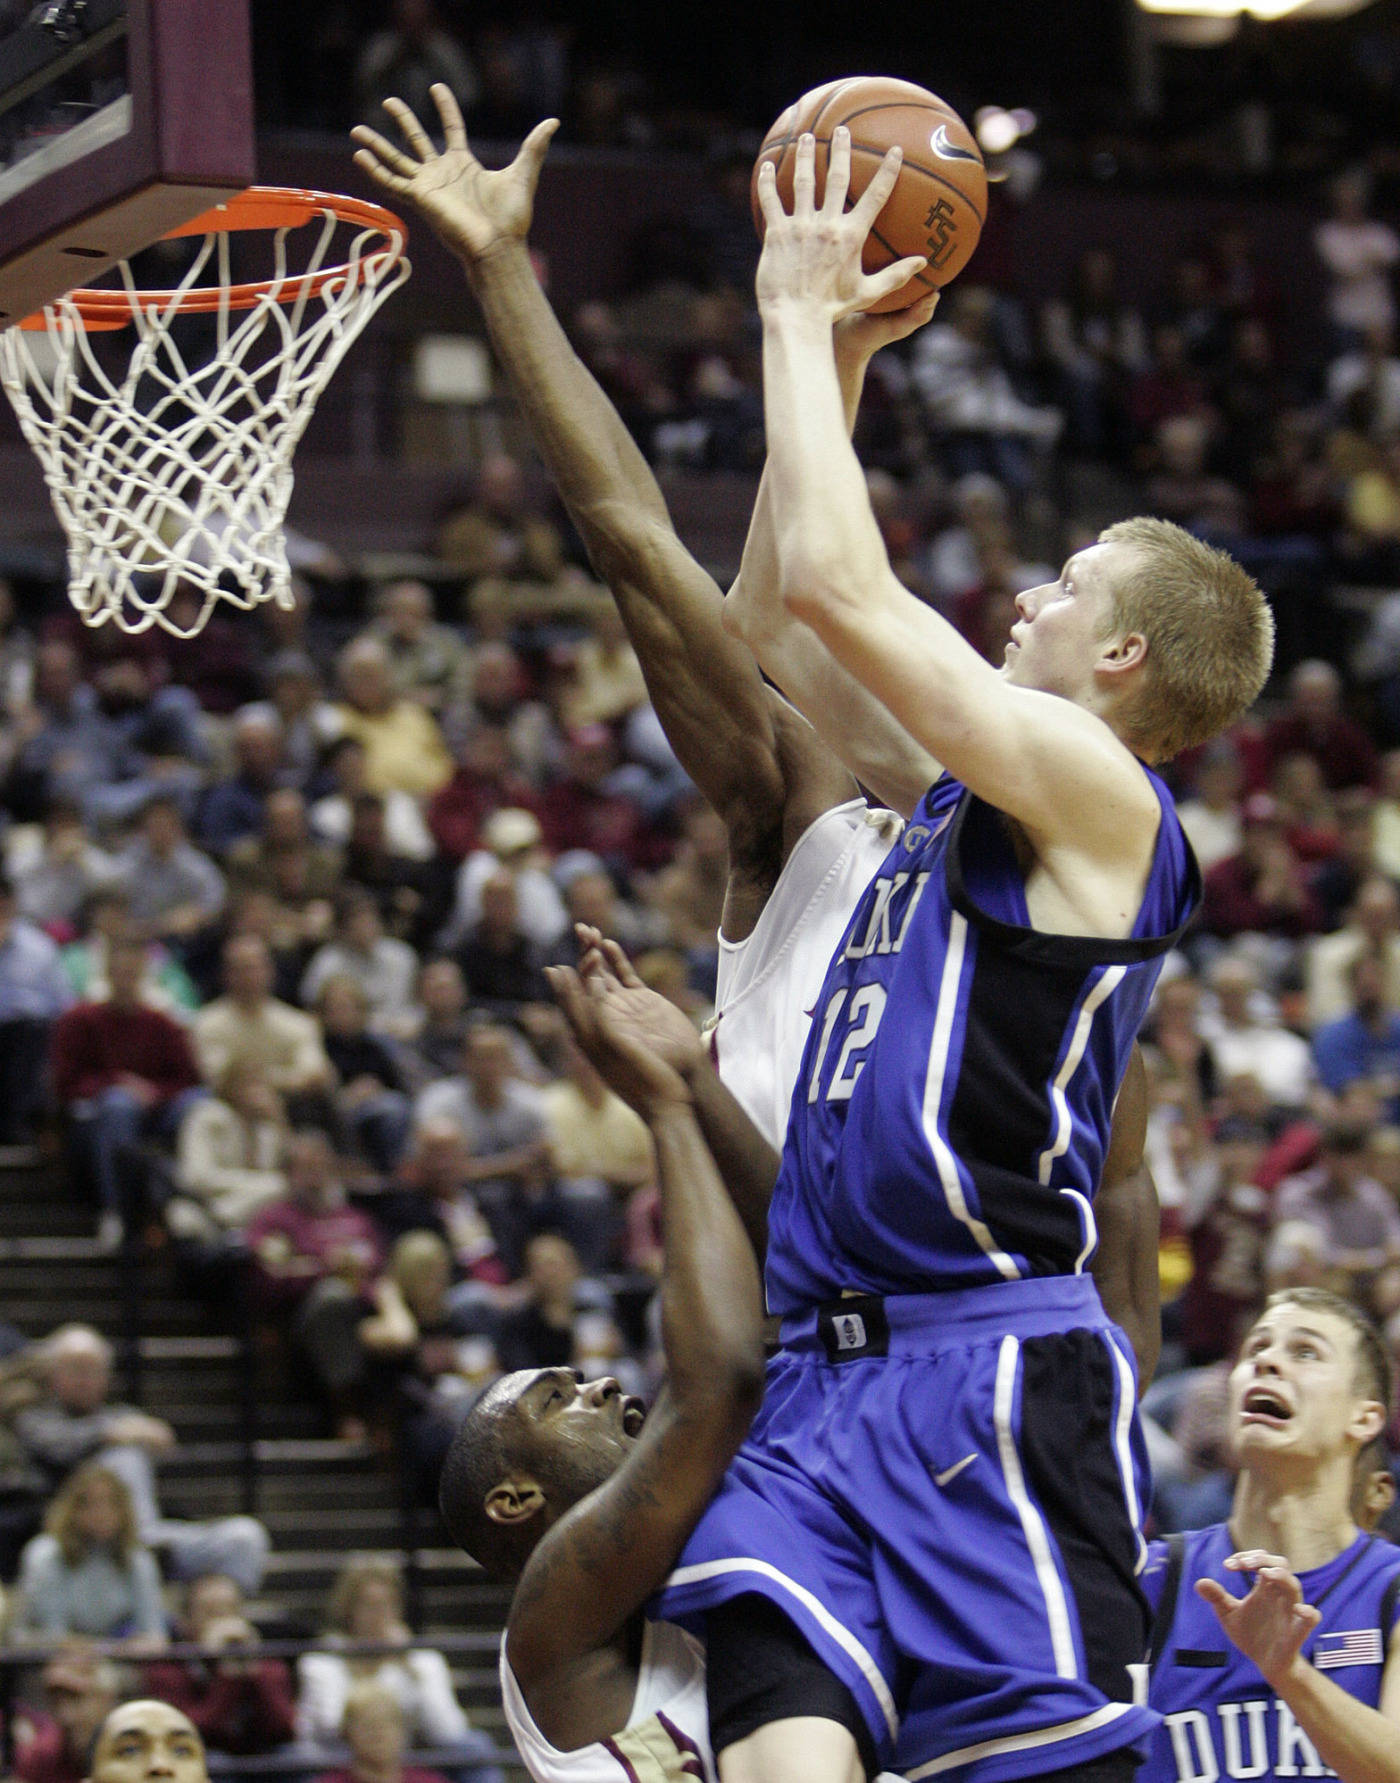 Duke's Kyle Singler shoots over the defense of Florida State's Uche Echefu and Ralph Mims, left in the second half of a college basketball game on Wednesday, Jan. 16, 2008 in Tallahassee, Fla. Duke won 70-57.